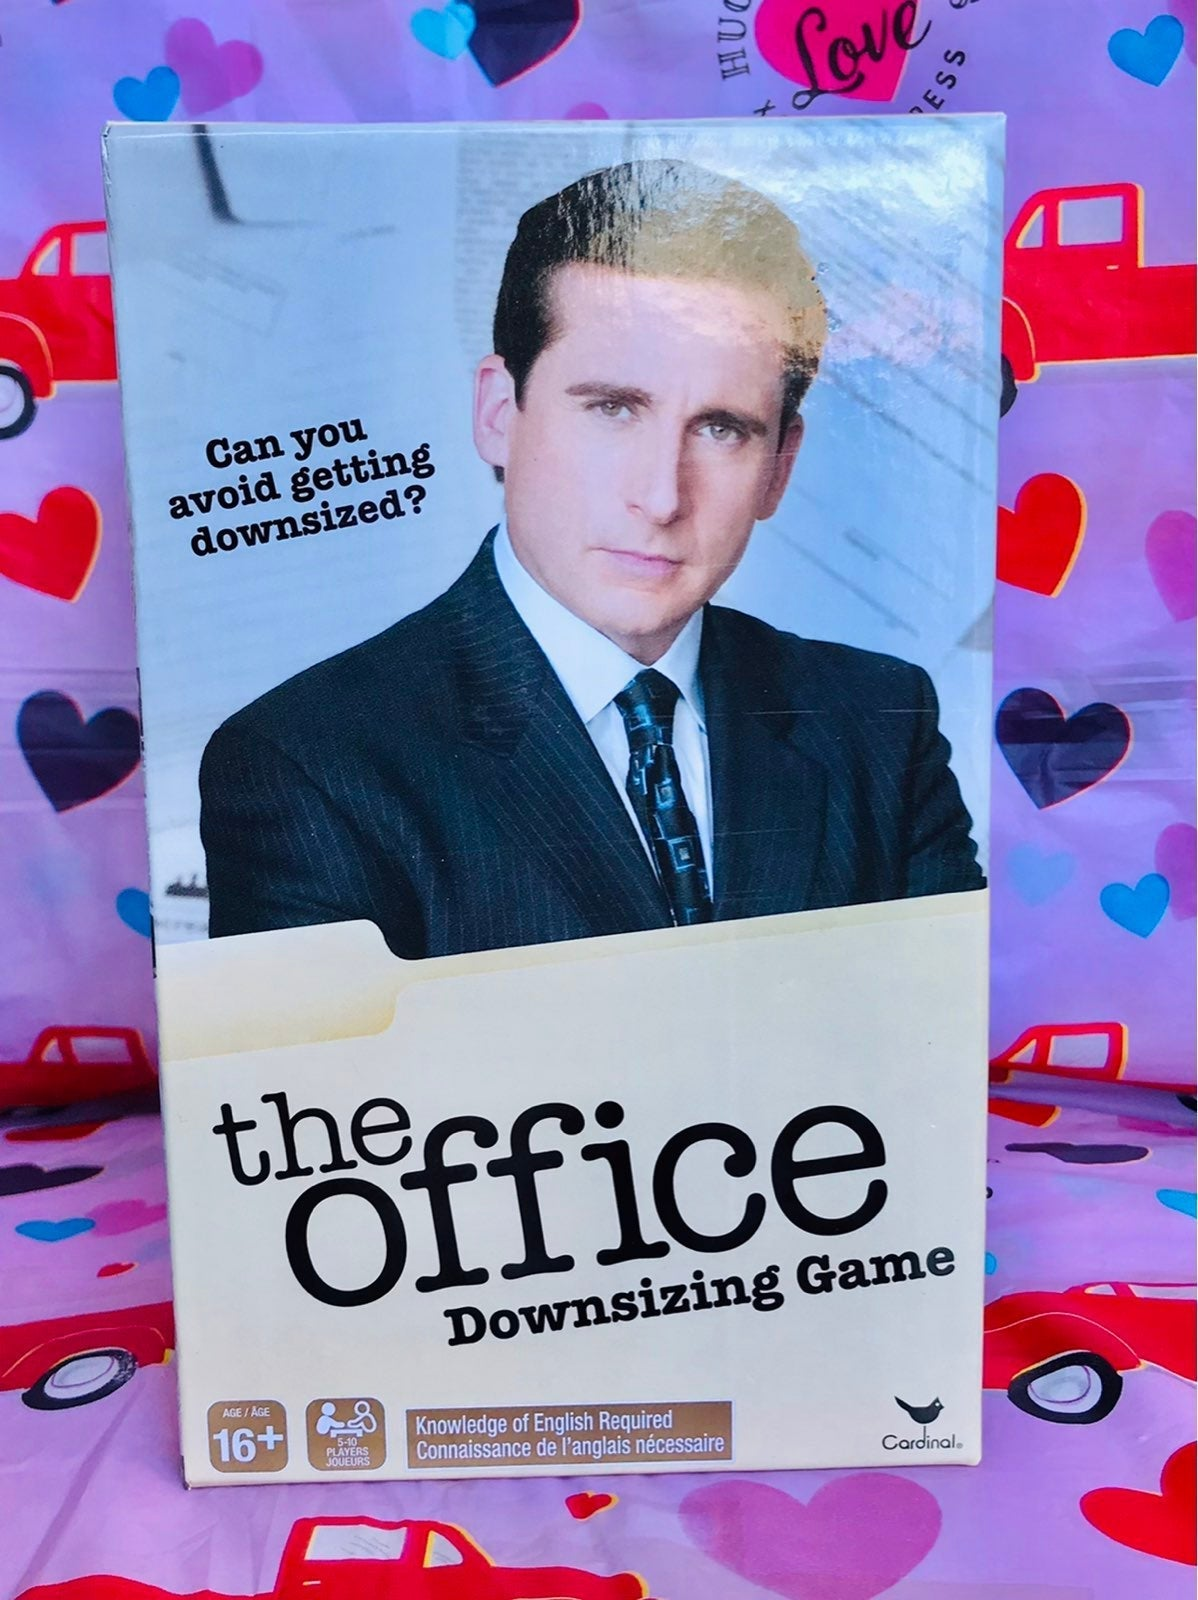 The Office Downsizing Game #2